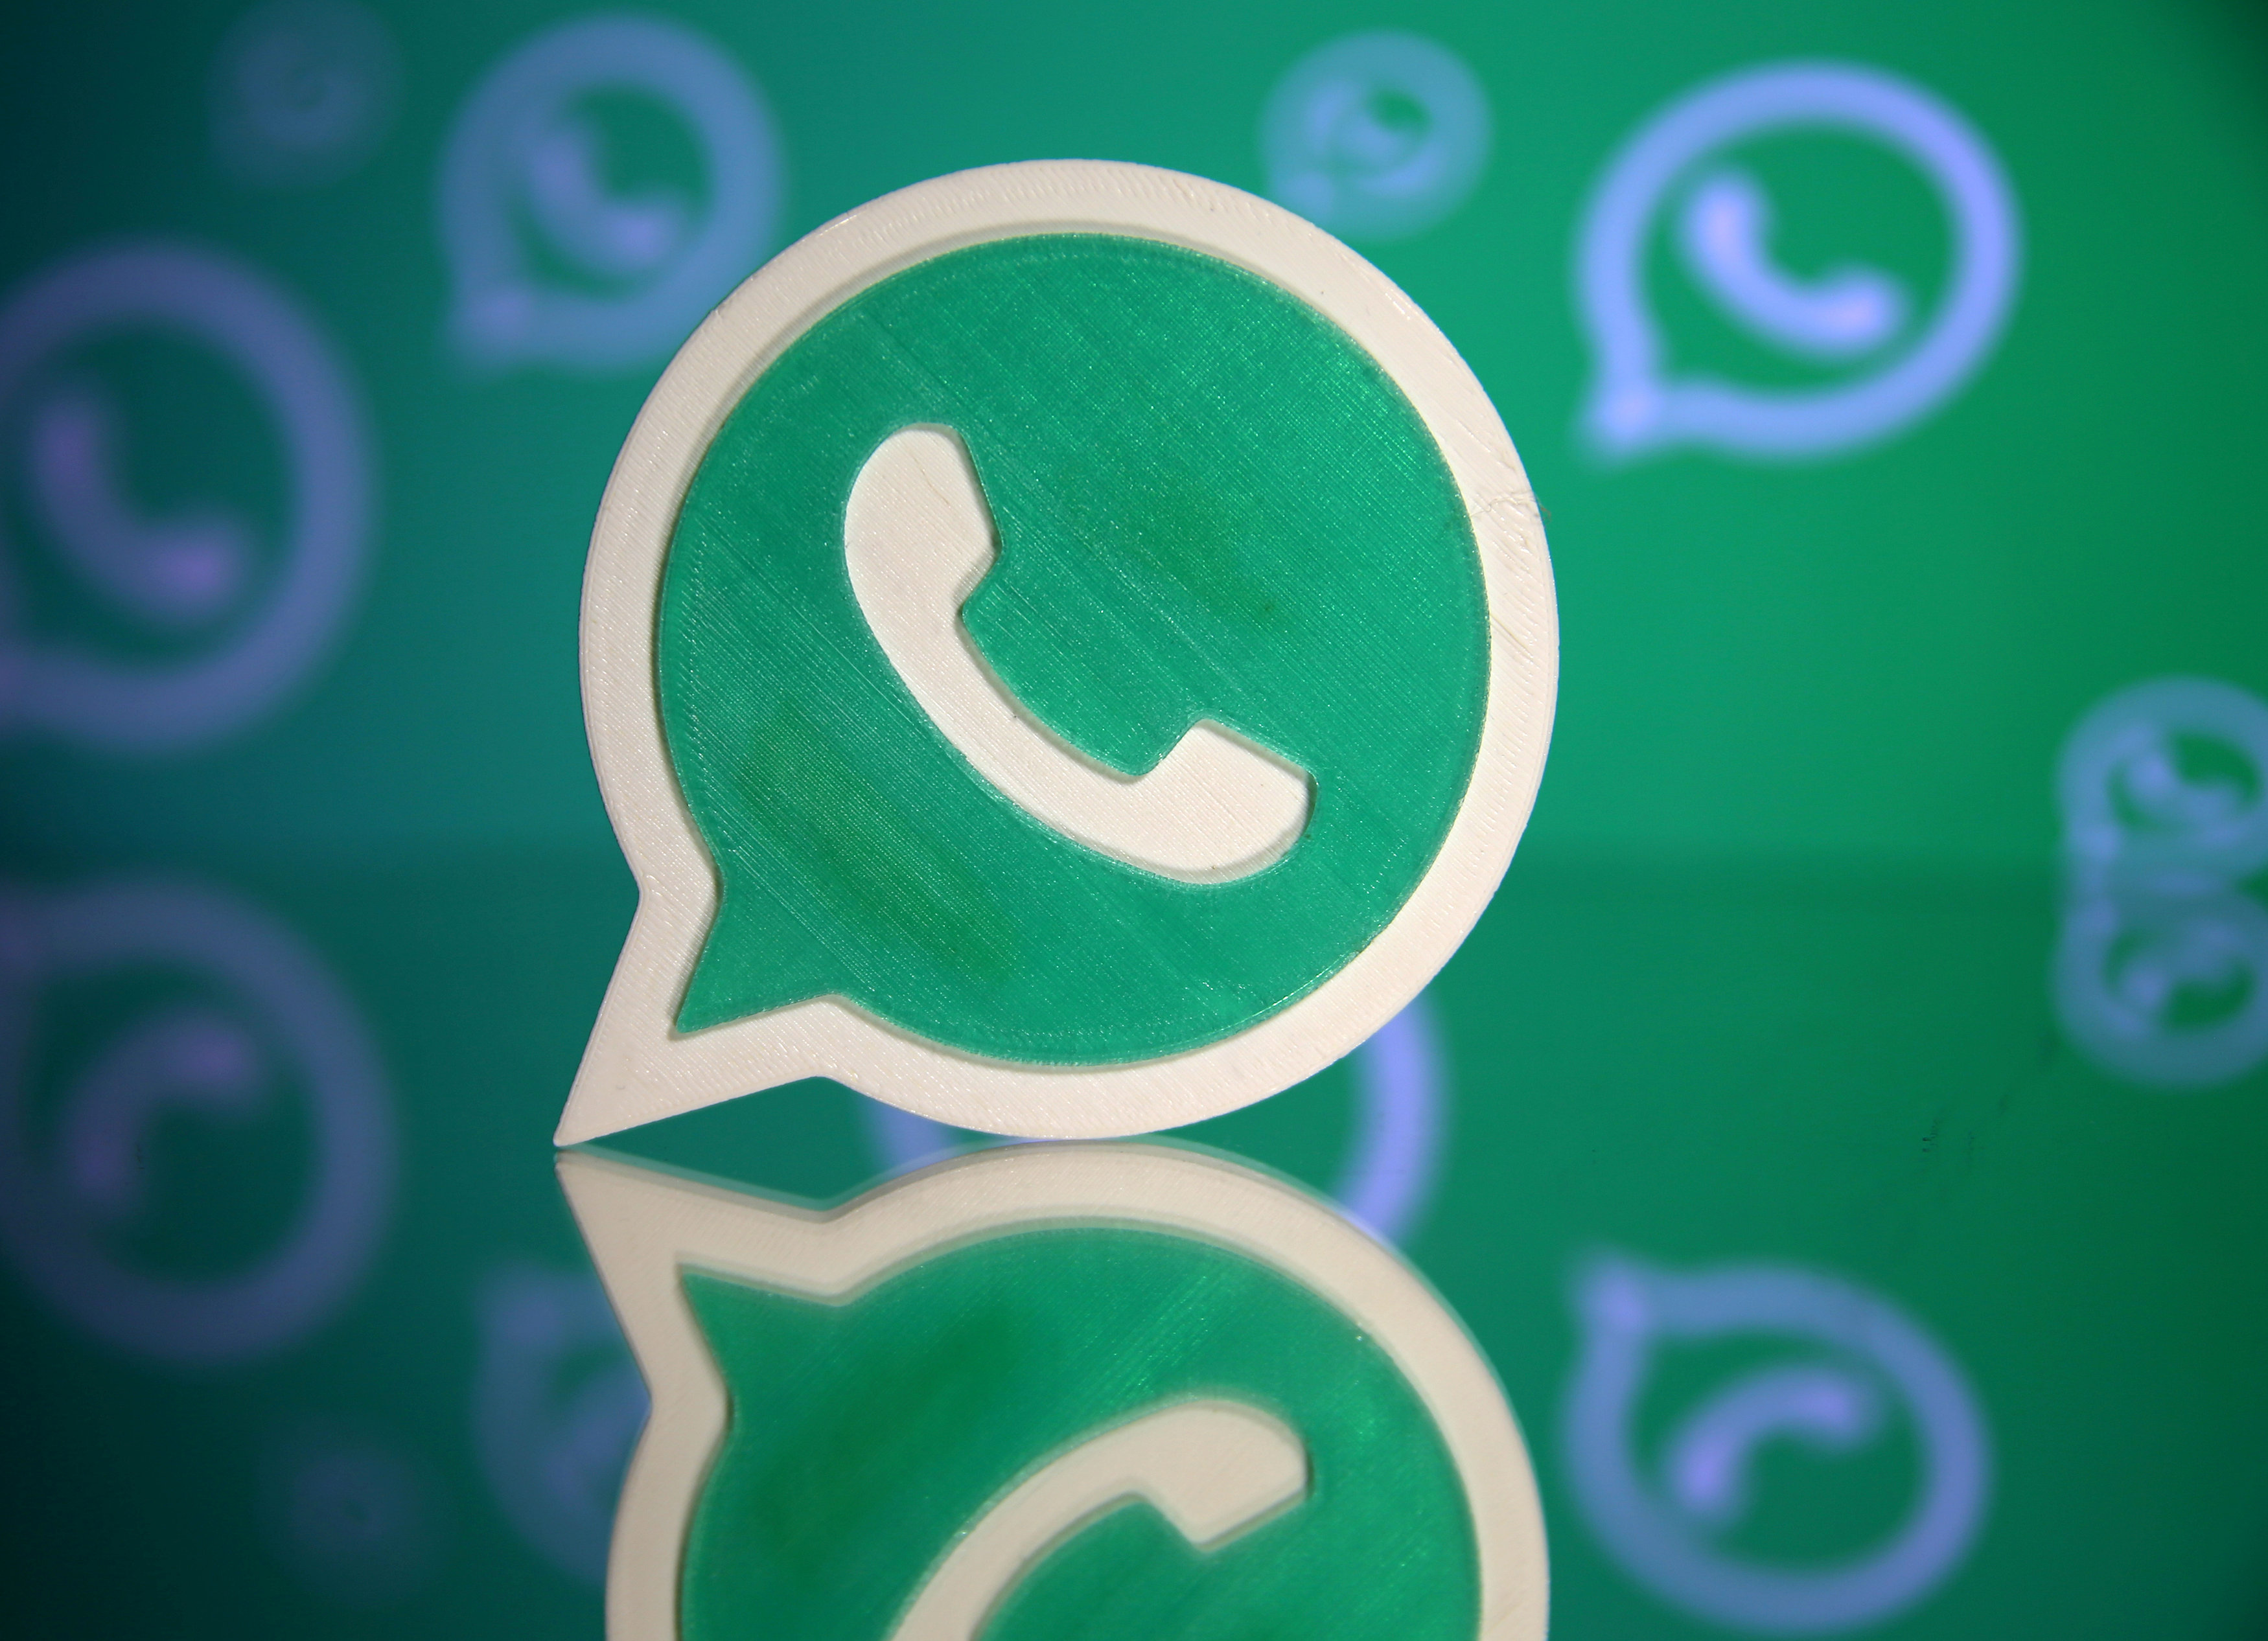 WhatsApp update brings new features for messenger app for iPhones